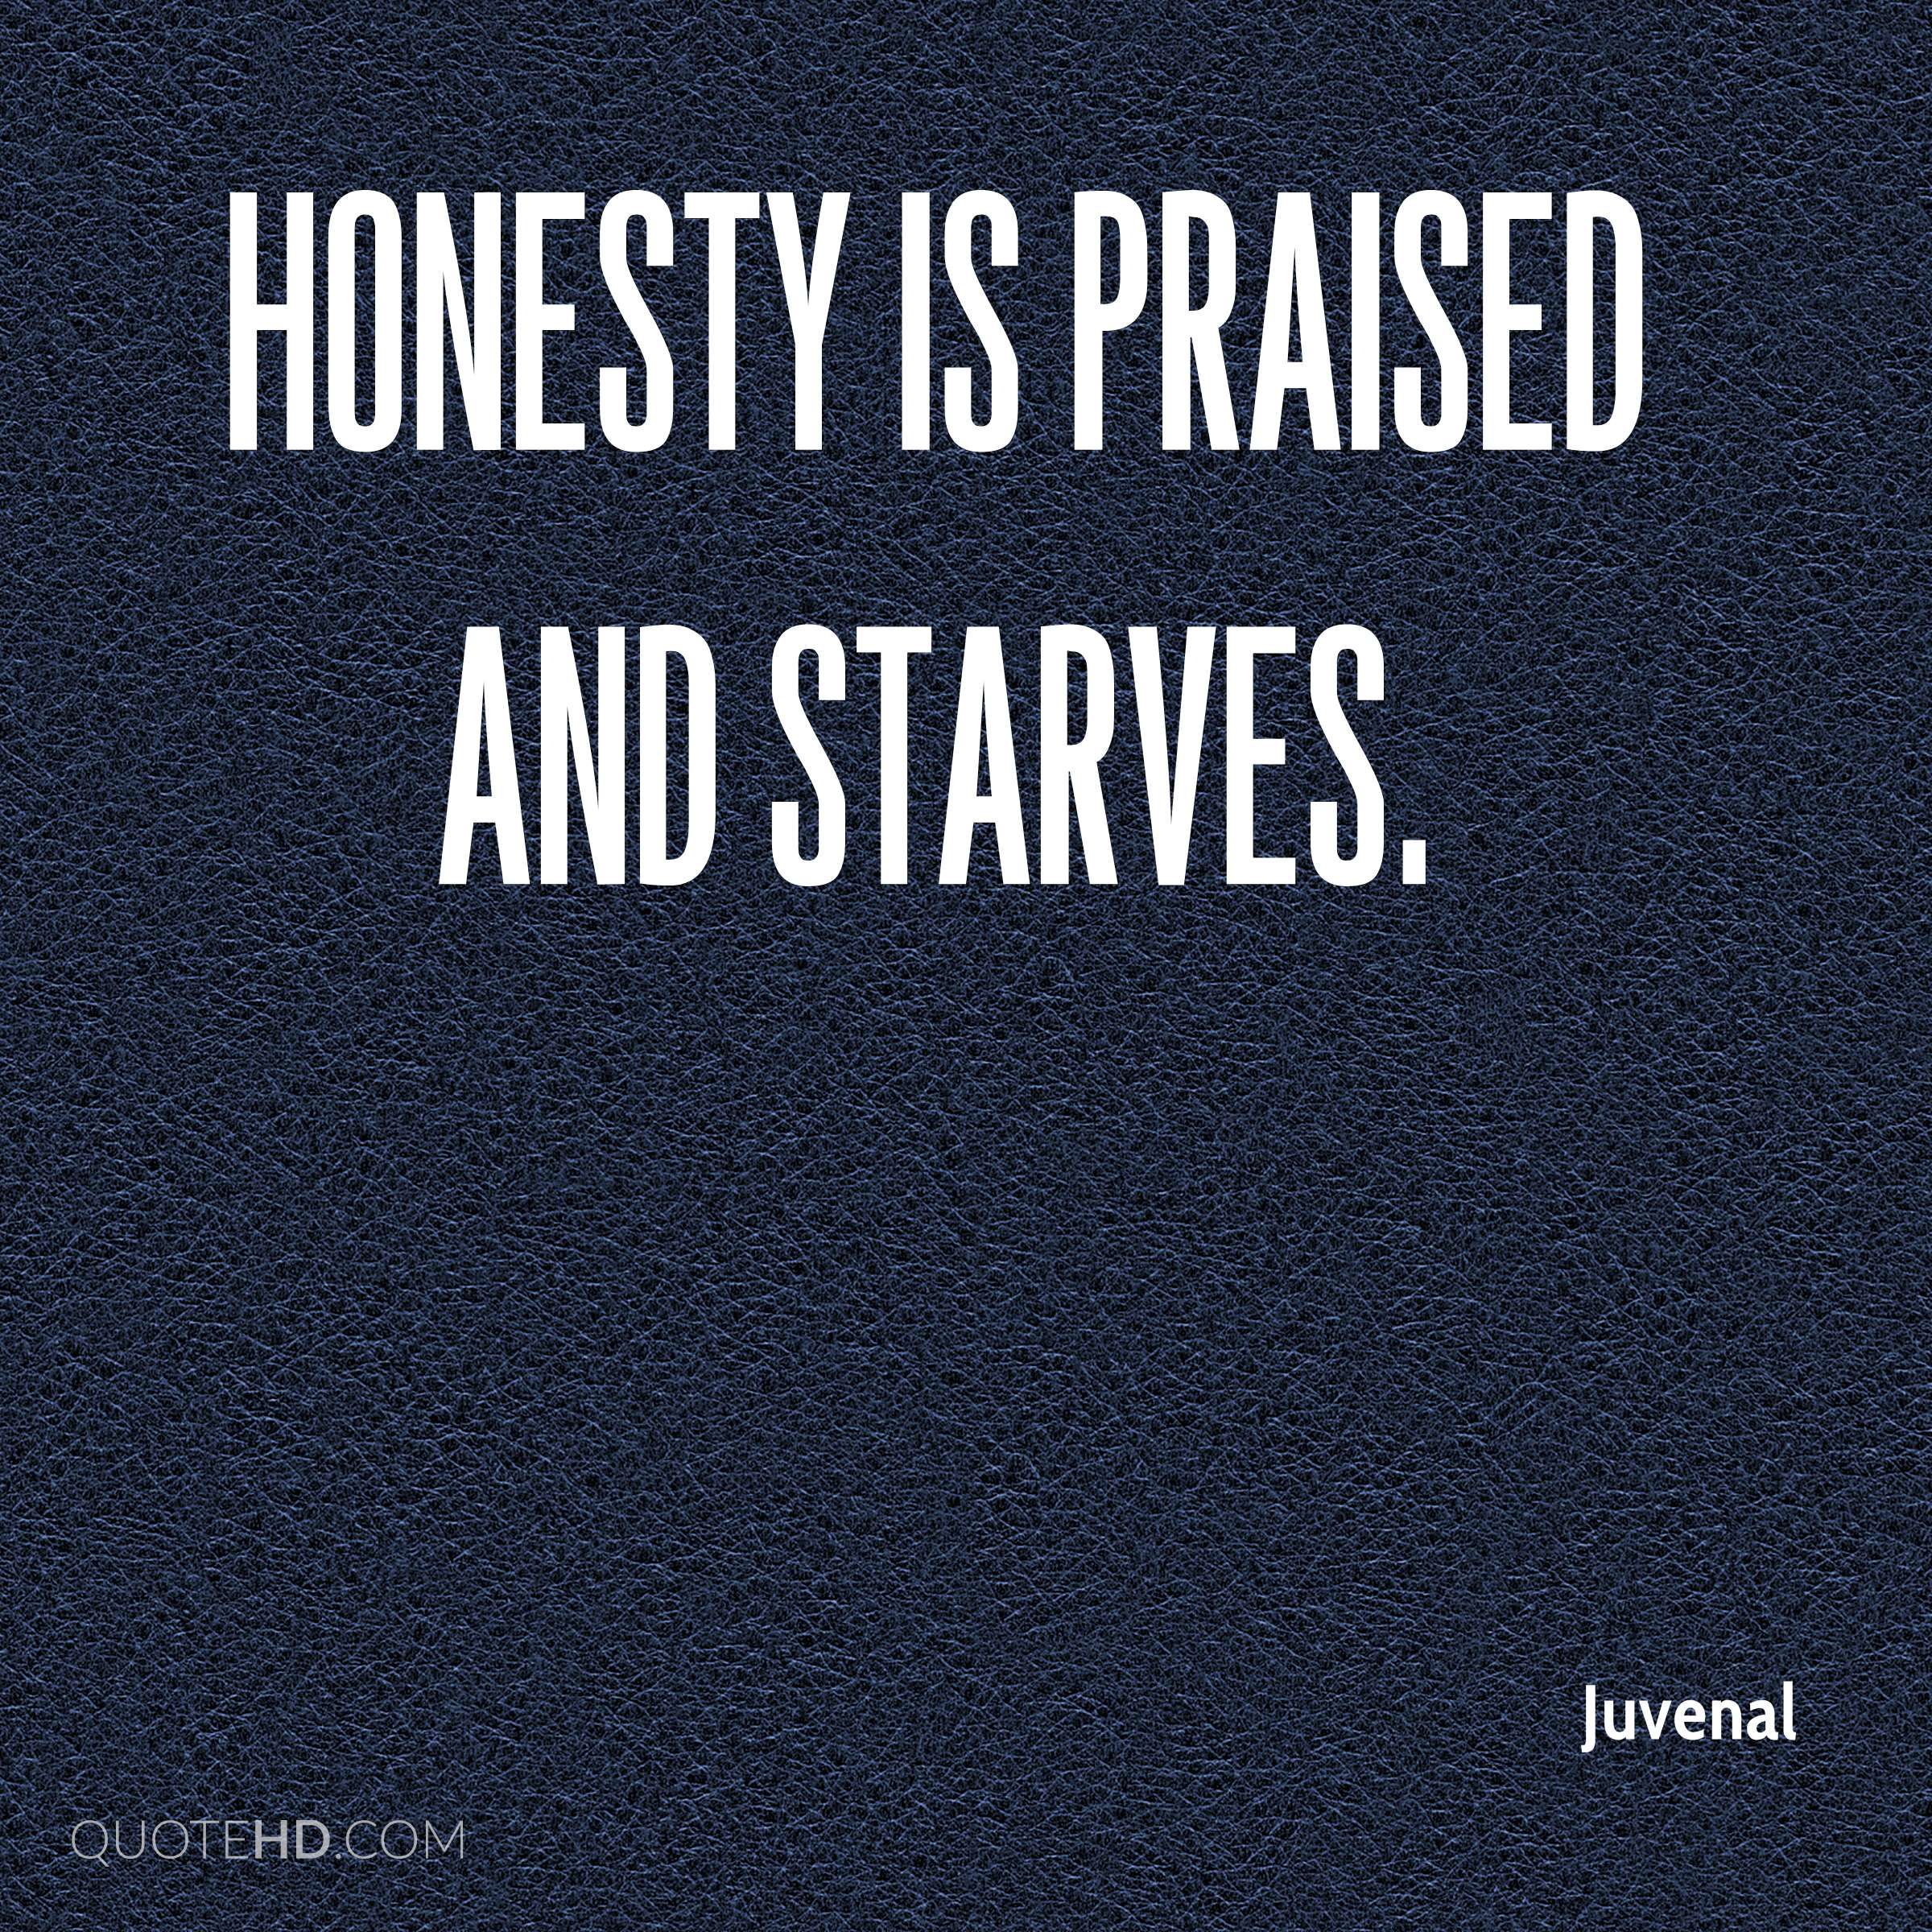 Honesty is praised and starves.